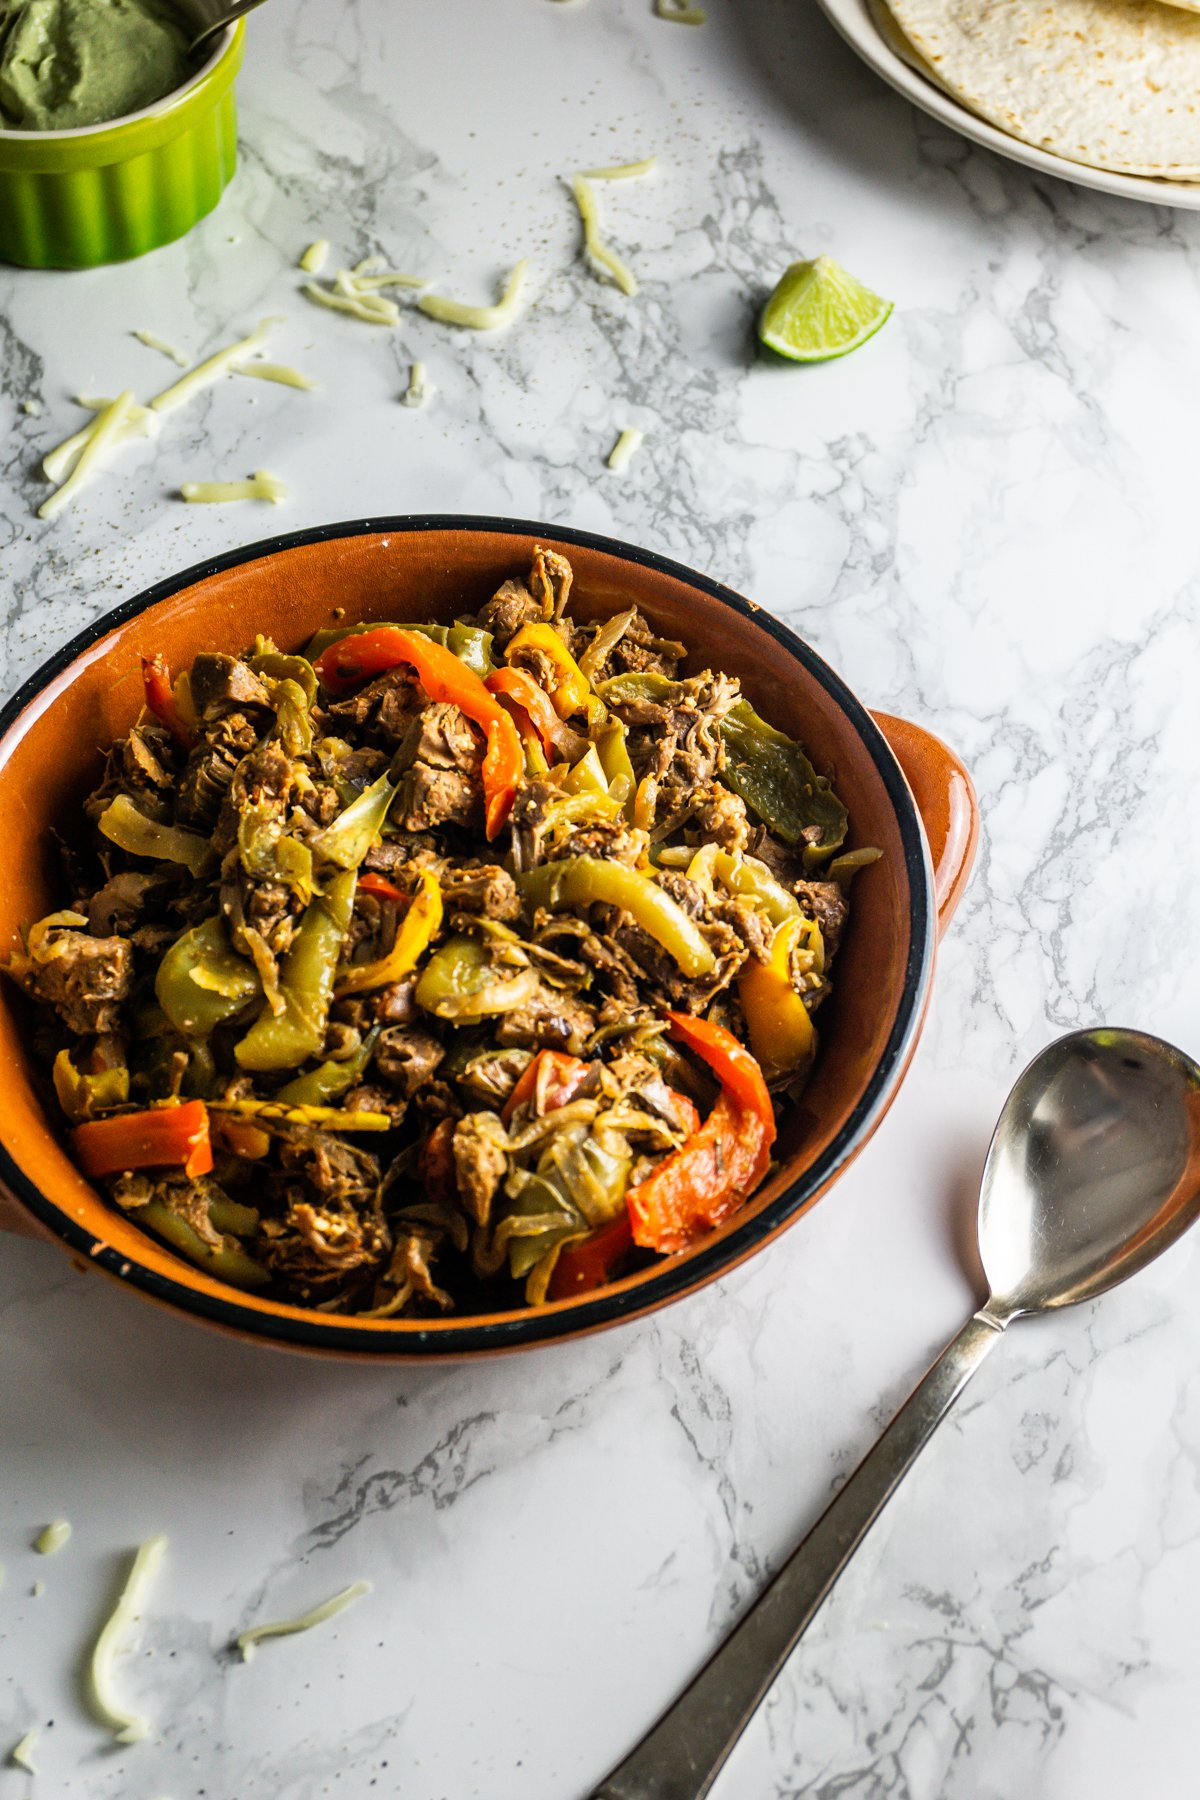 Mexican-Inspired Jackfruit Fajitas in a ramekin bowl with a spoon on a marble background